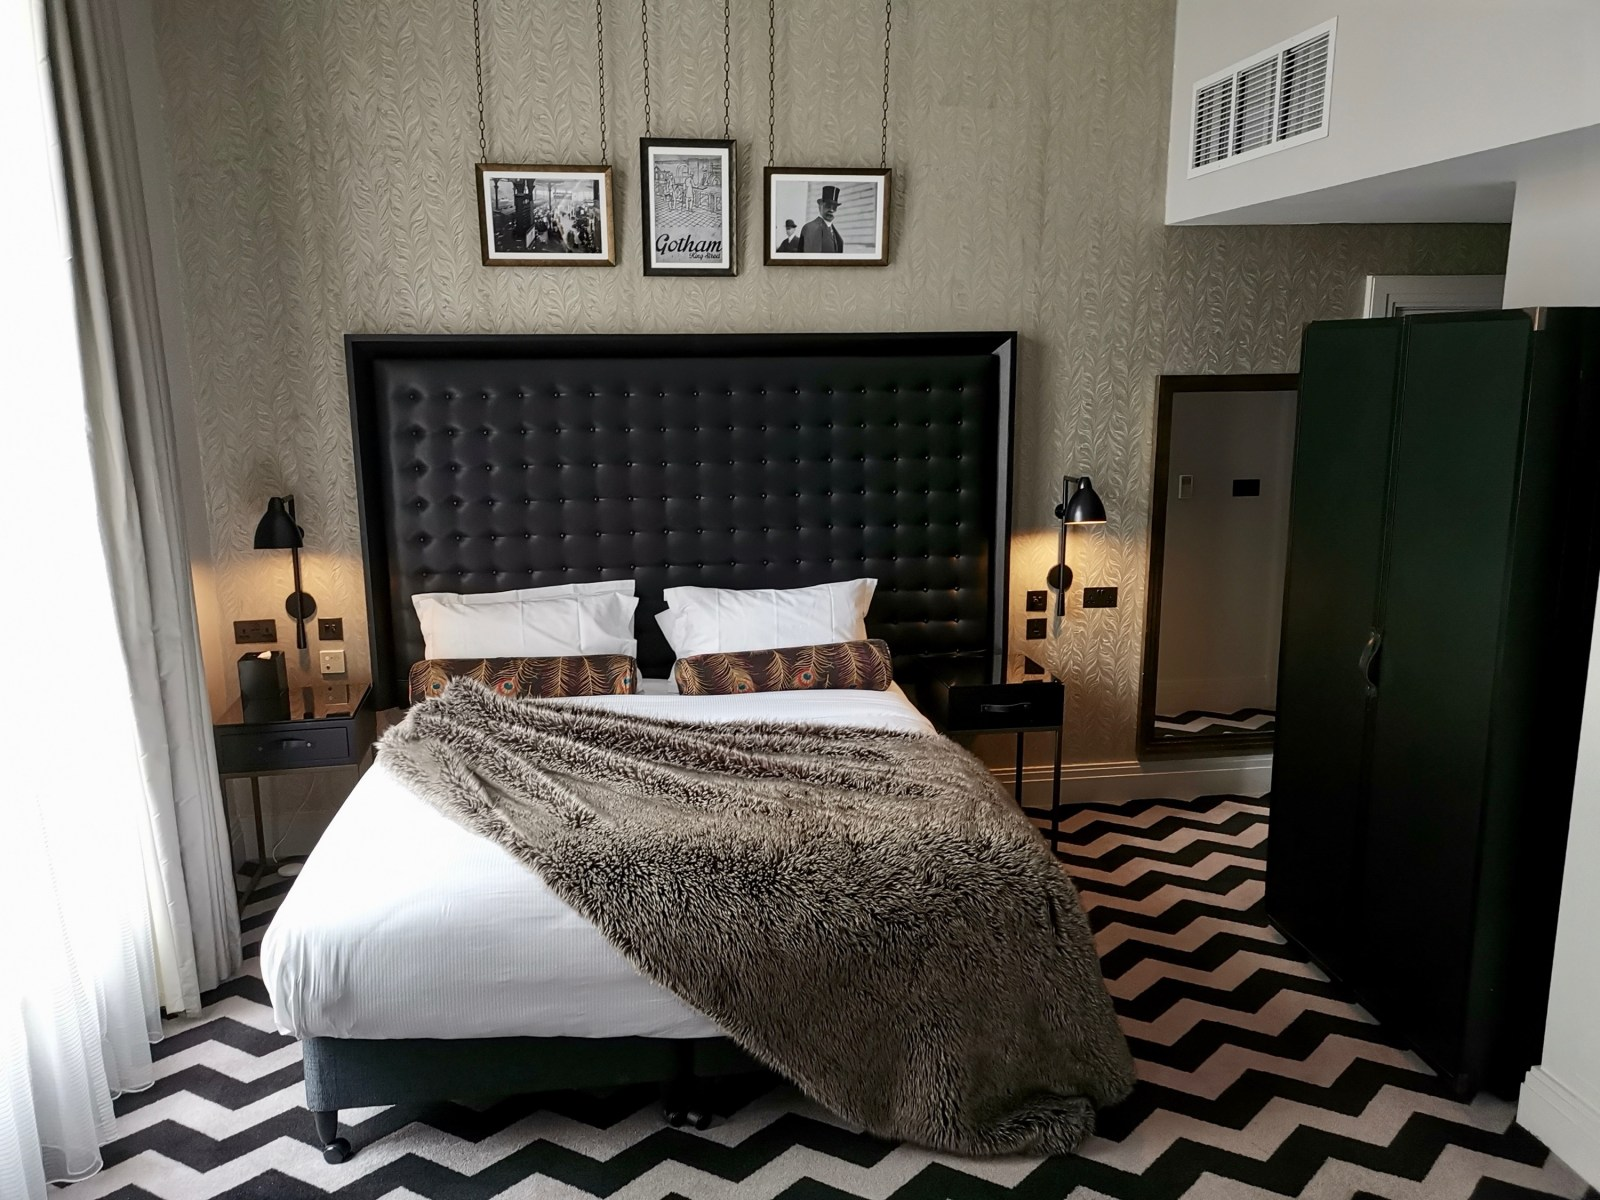 Bedroom at Hotel Gotham, Manchester